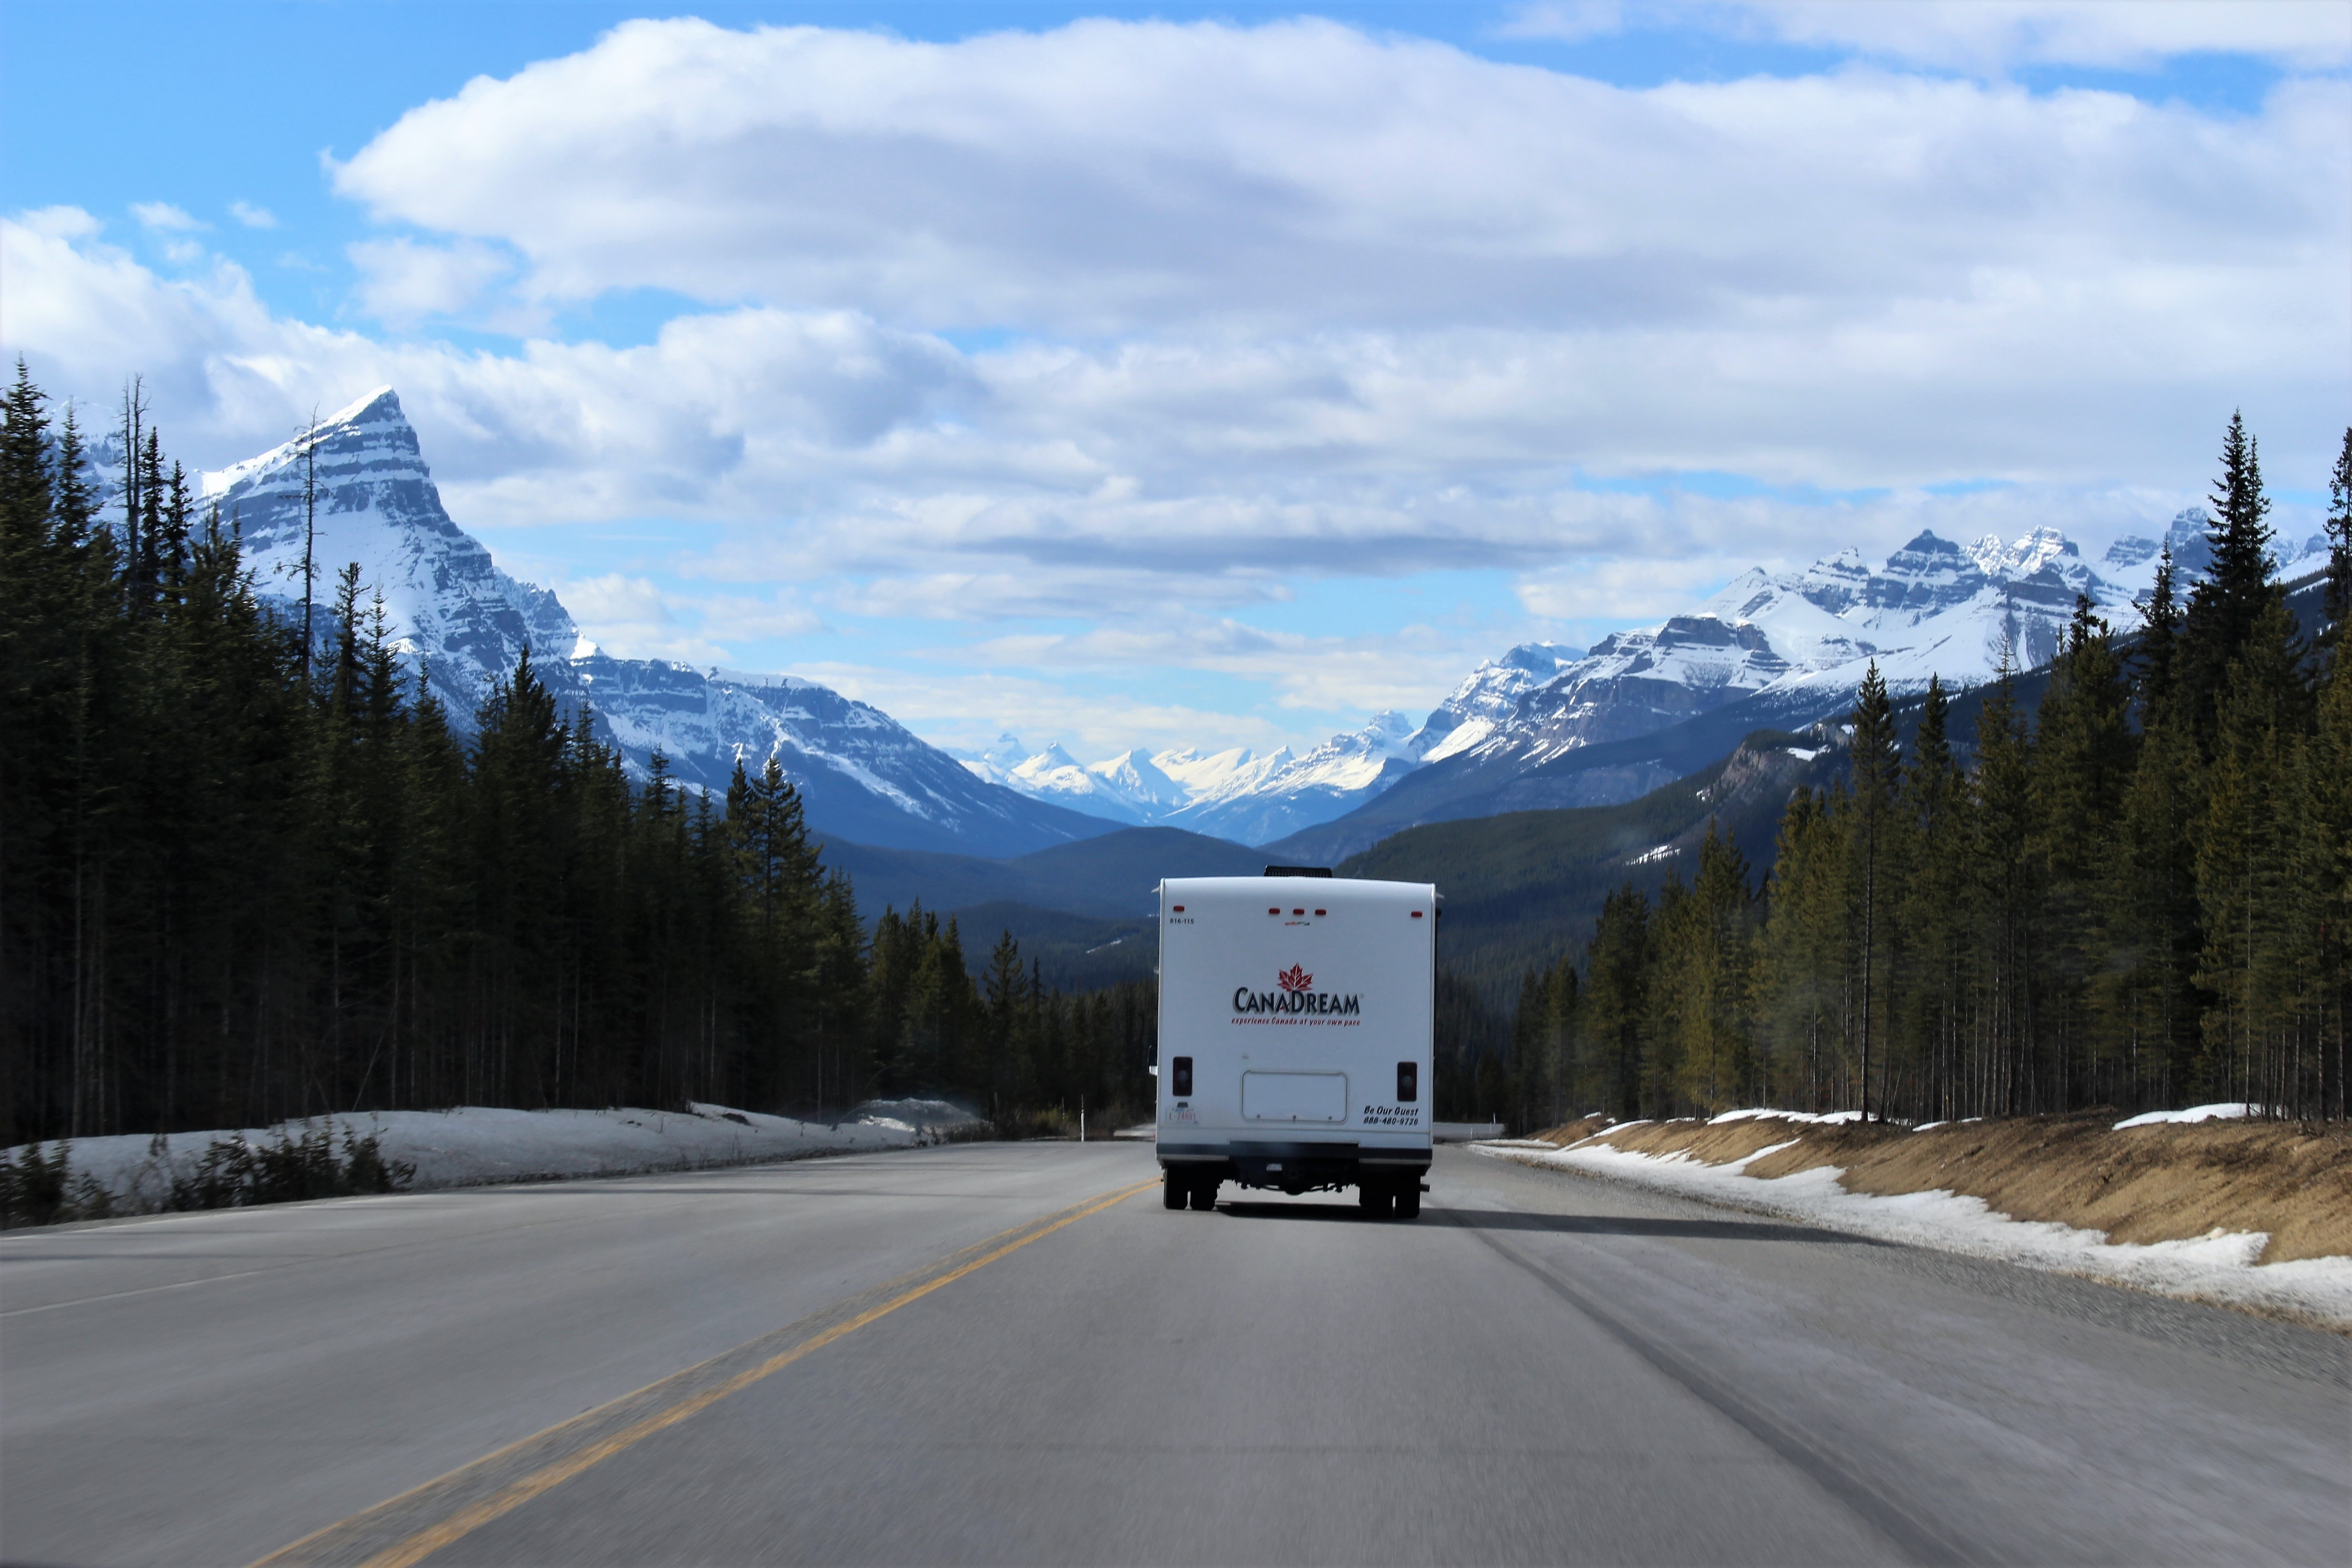 White CanaDream box truck on the road with mountains on background.